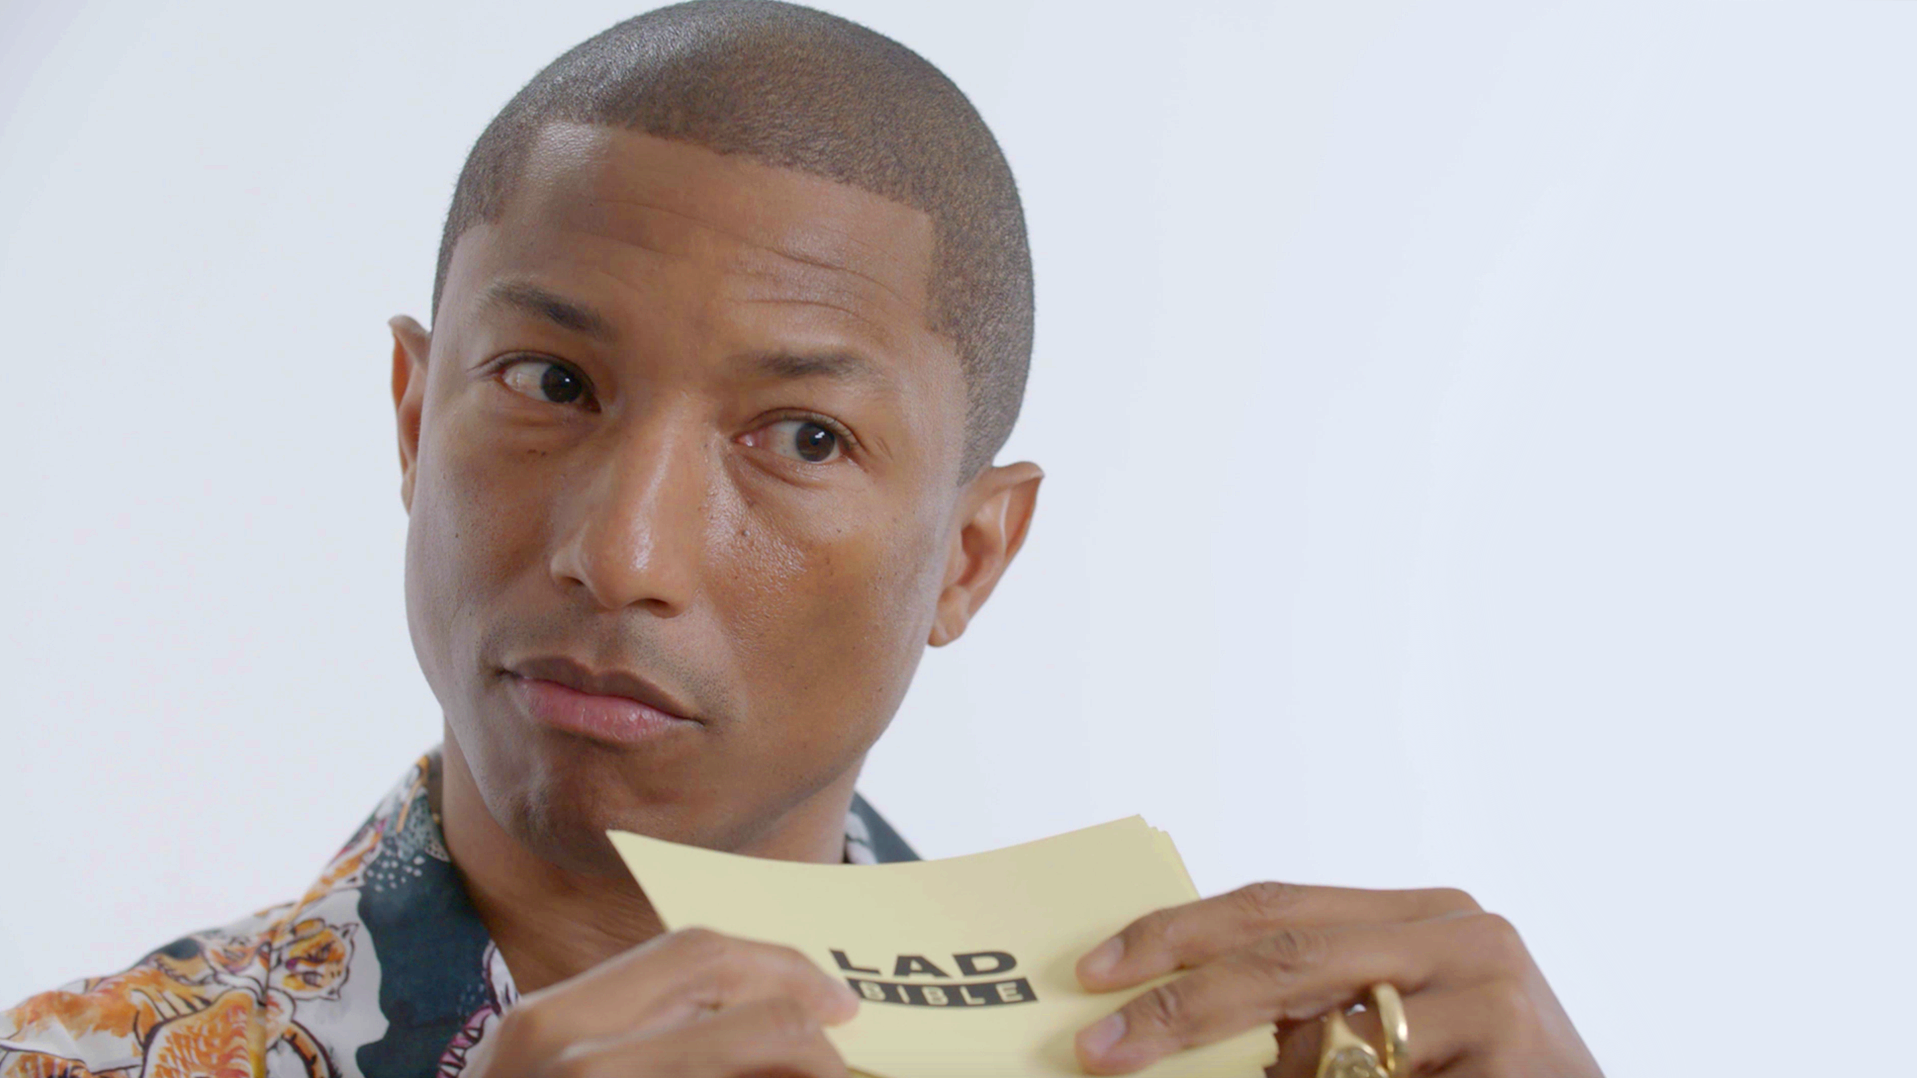 Prepare For Life Advice From Pharrell Williams And You'll Never Go Wrong